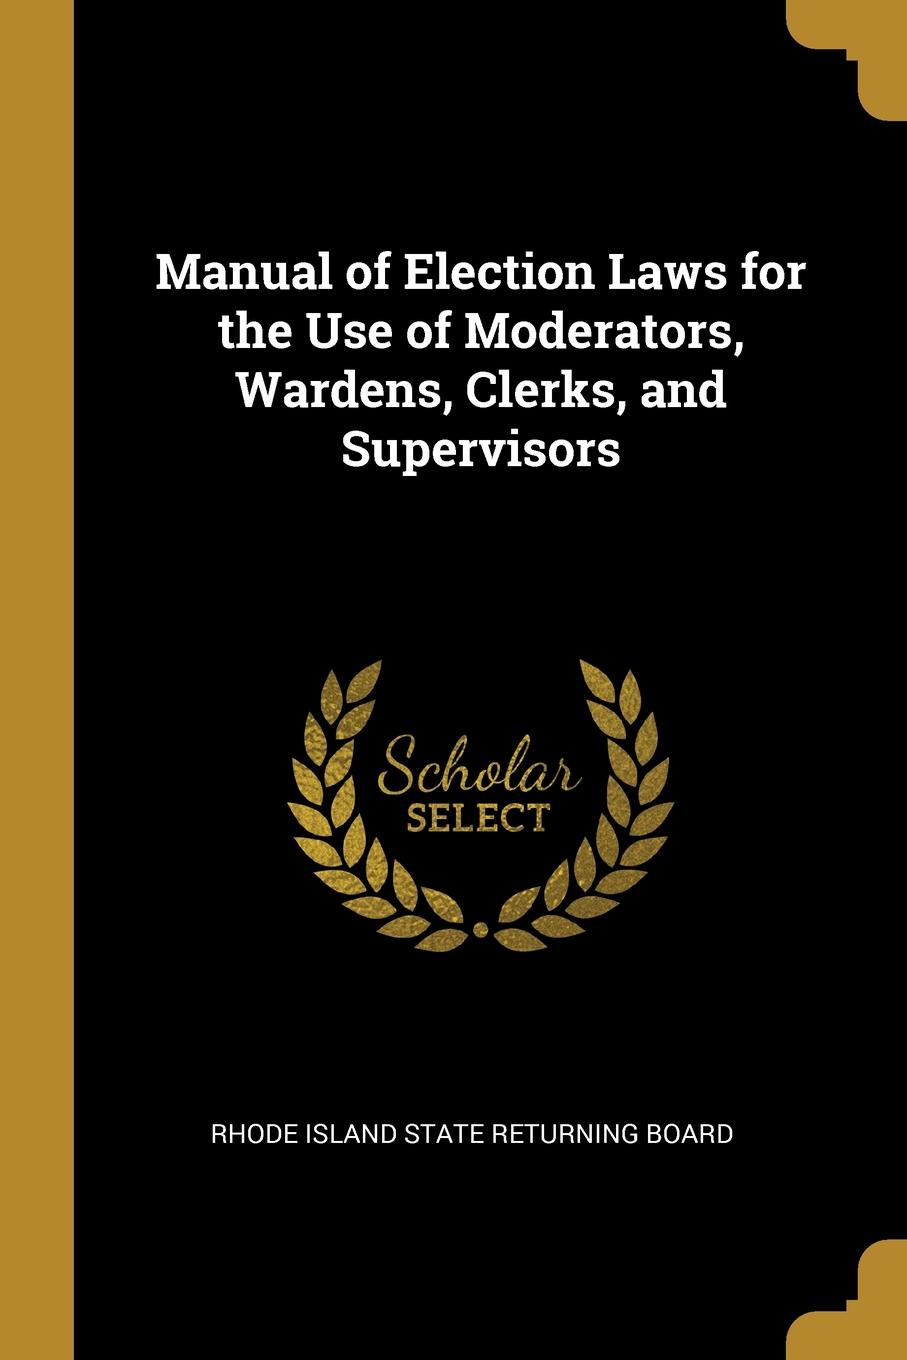 Rhode Island State Returning Board Manual of Election Laws for the Use of Moderators, Wardens, Clerks, and Supervisors